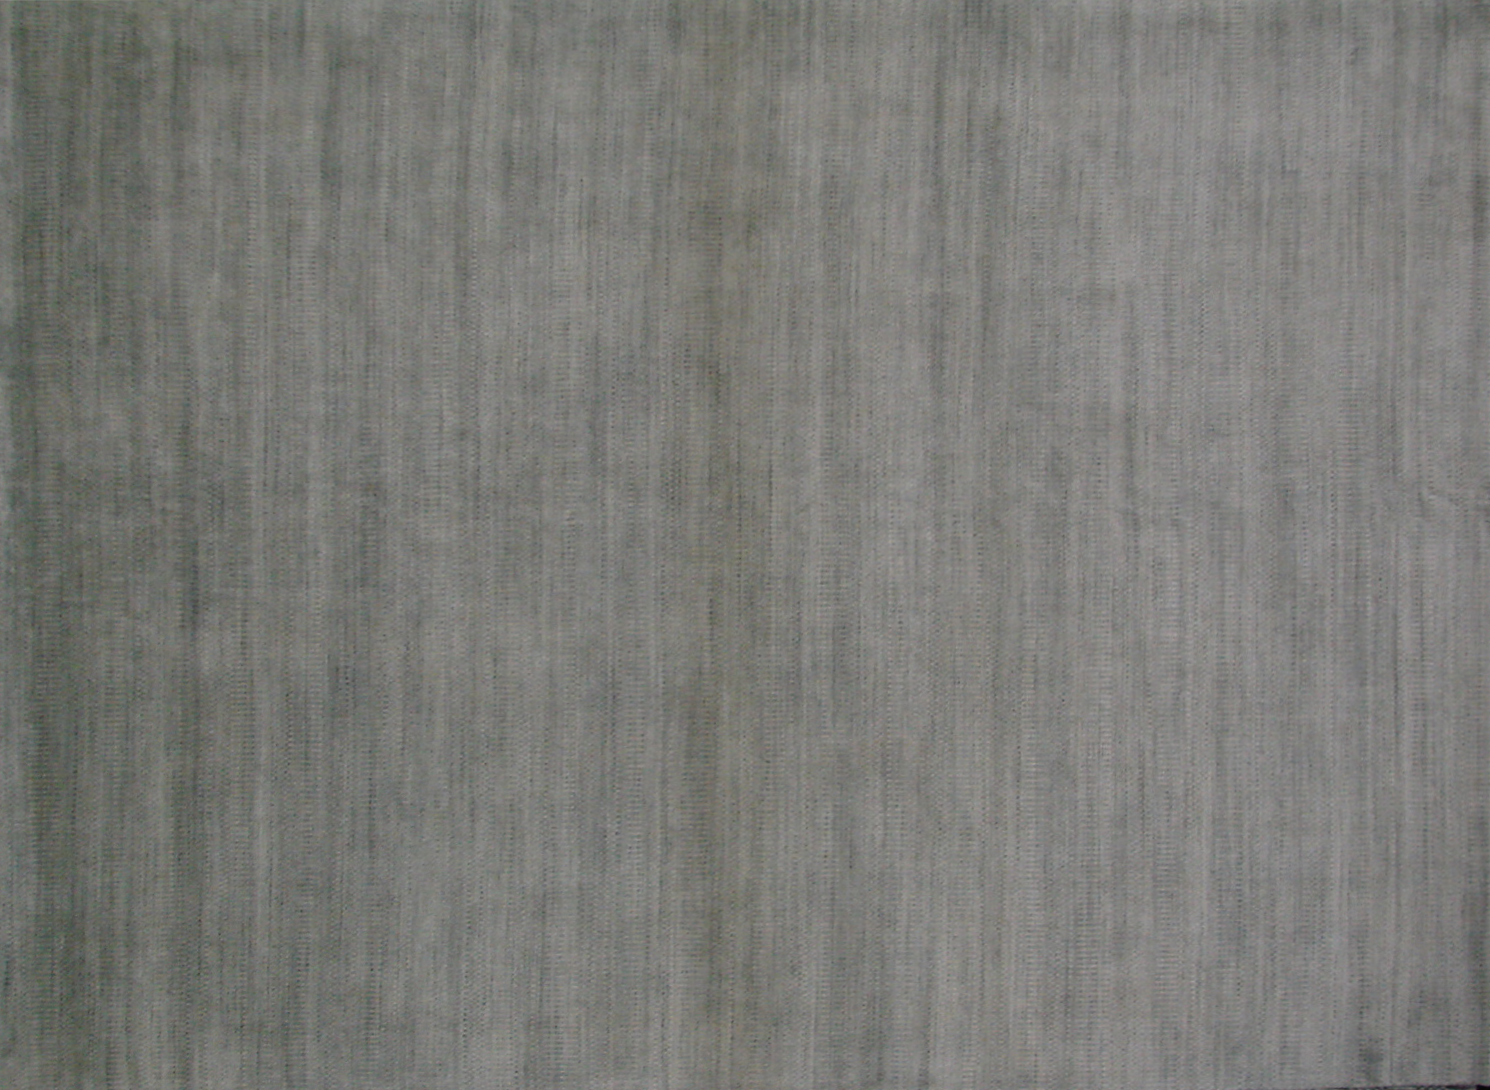 9x12 Contemporary Hand Knotted Wool Area Rug - MR20821